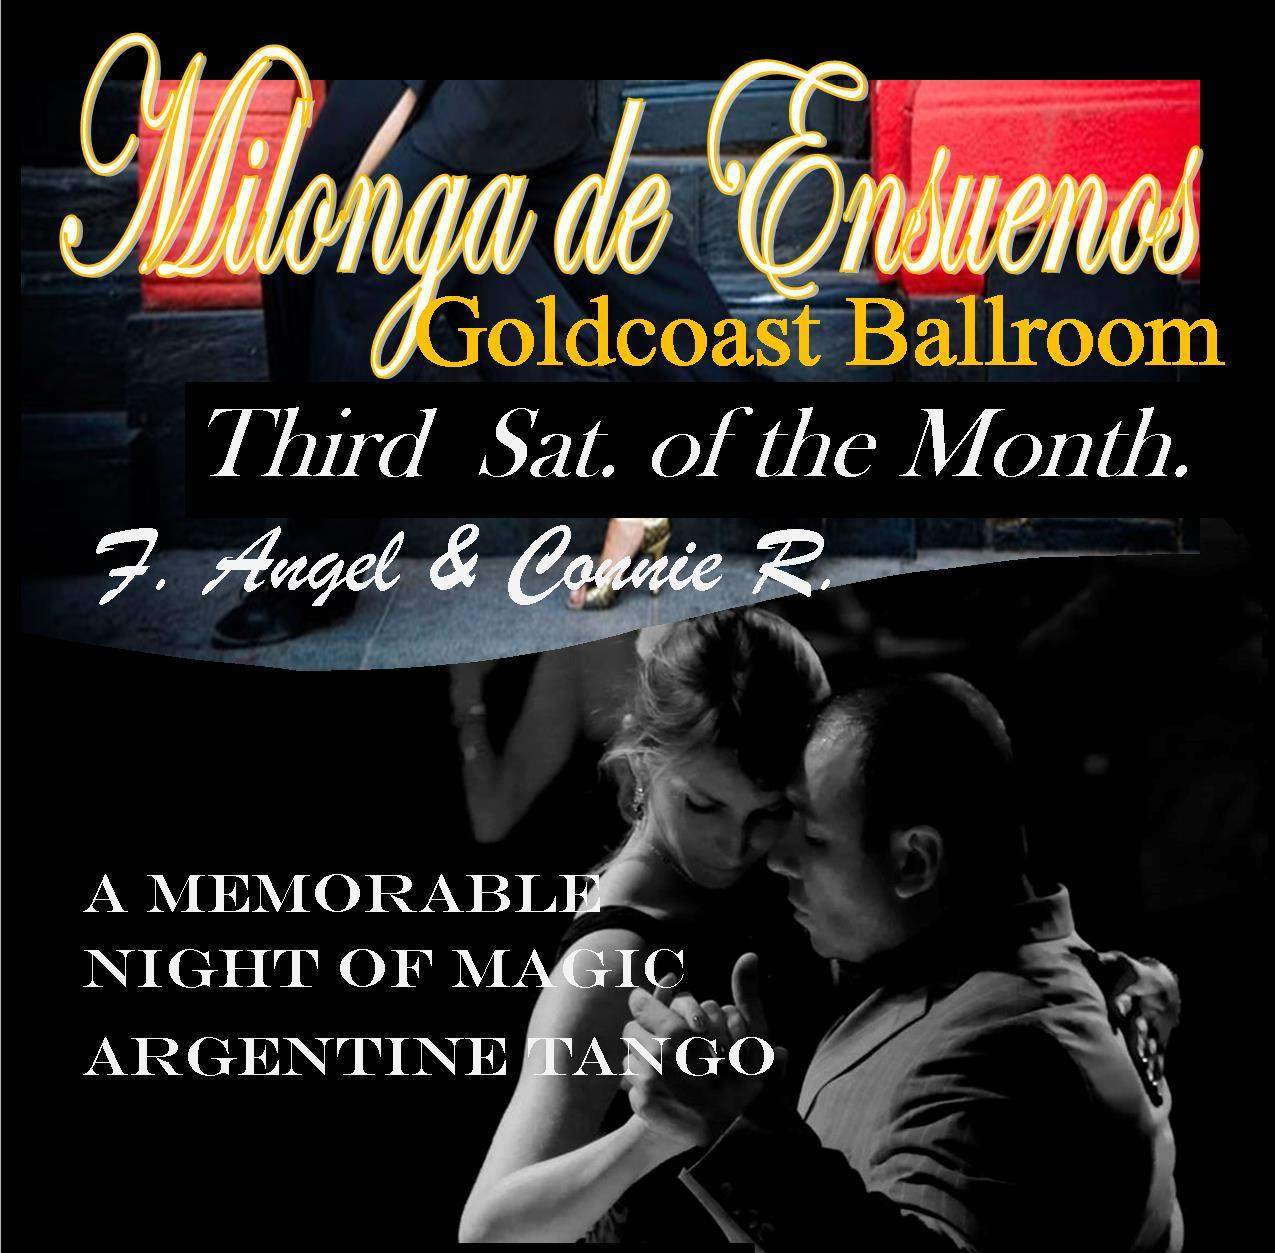 Milonga de Ensueños - Every Third Saturday of the Month - 9:00 PM - 2:00 AM